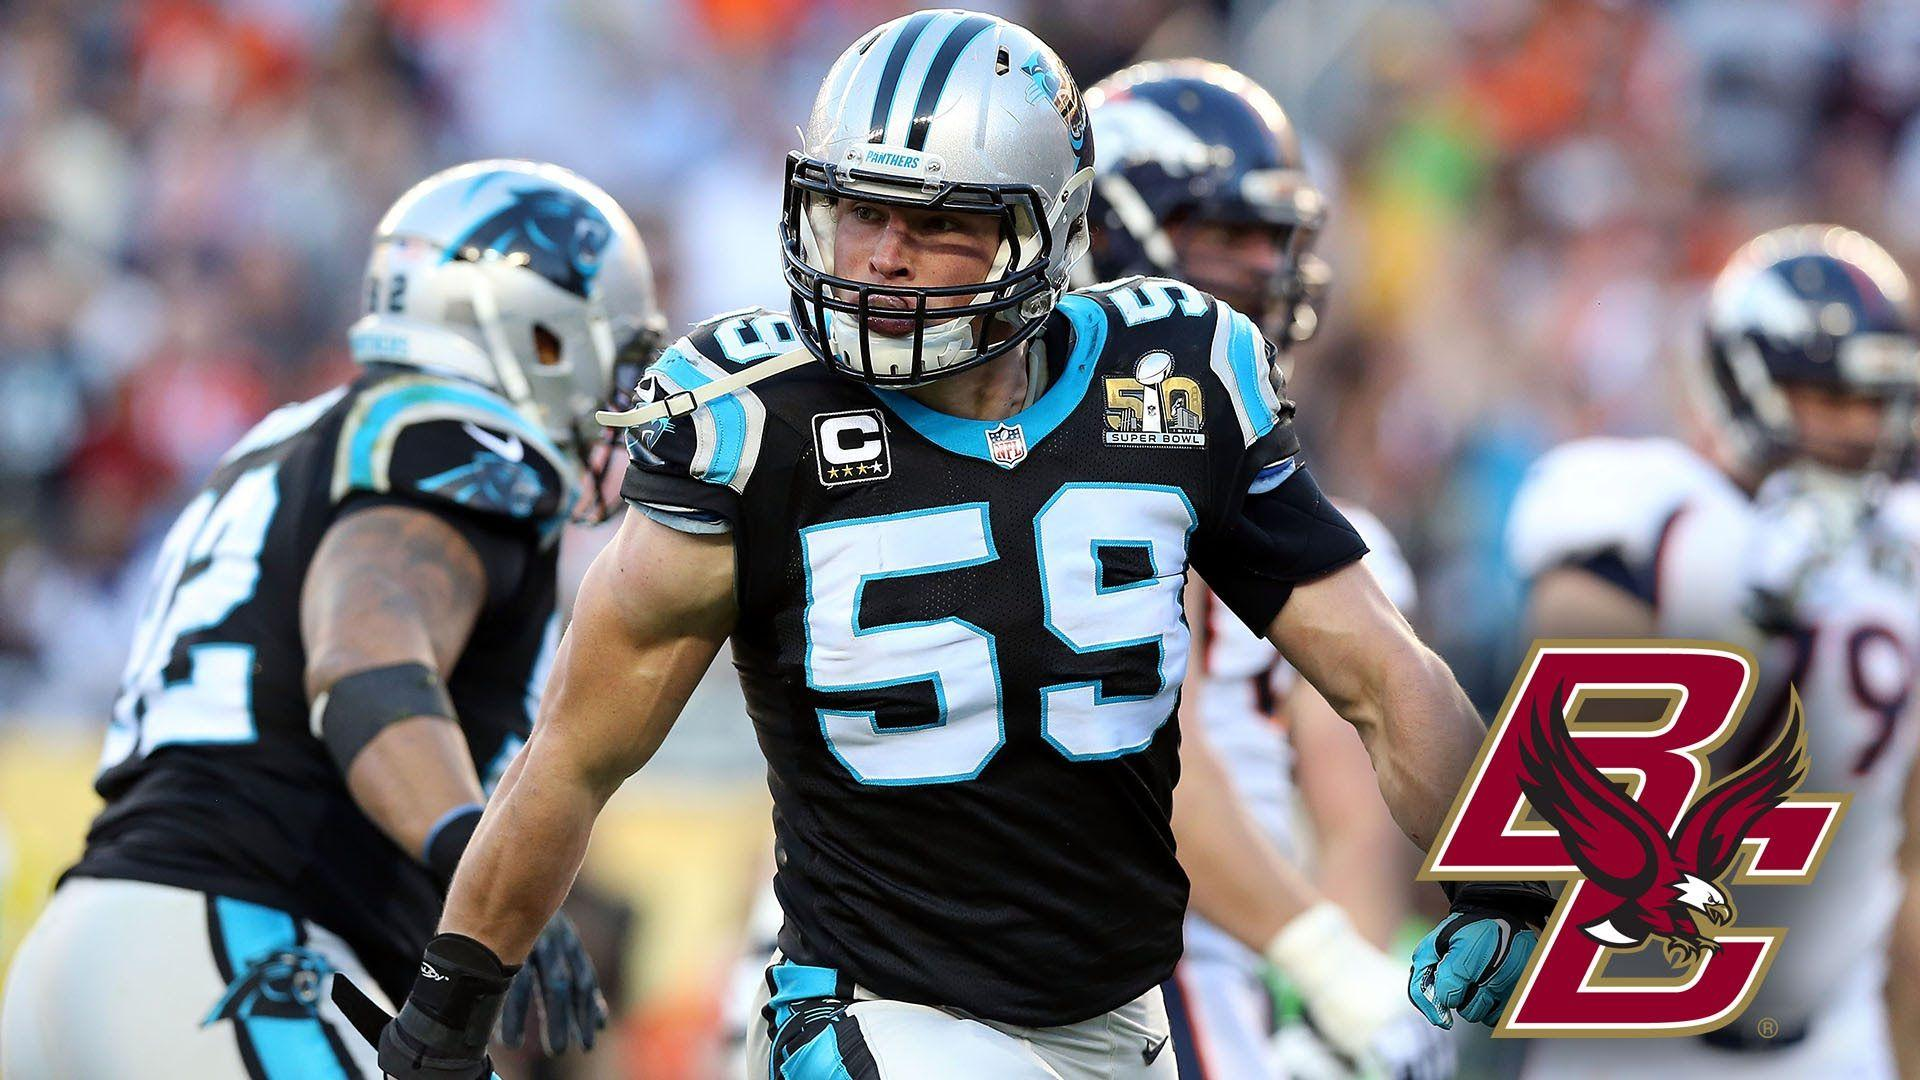 Luke Kuechly Loves Fishing, Lets Panther Teammates Do The Dancing